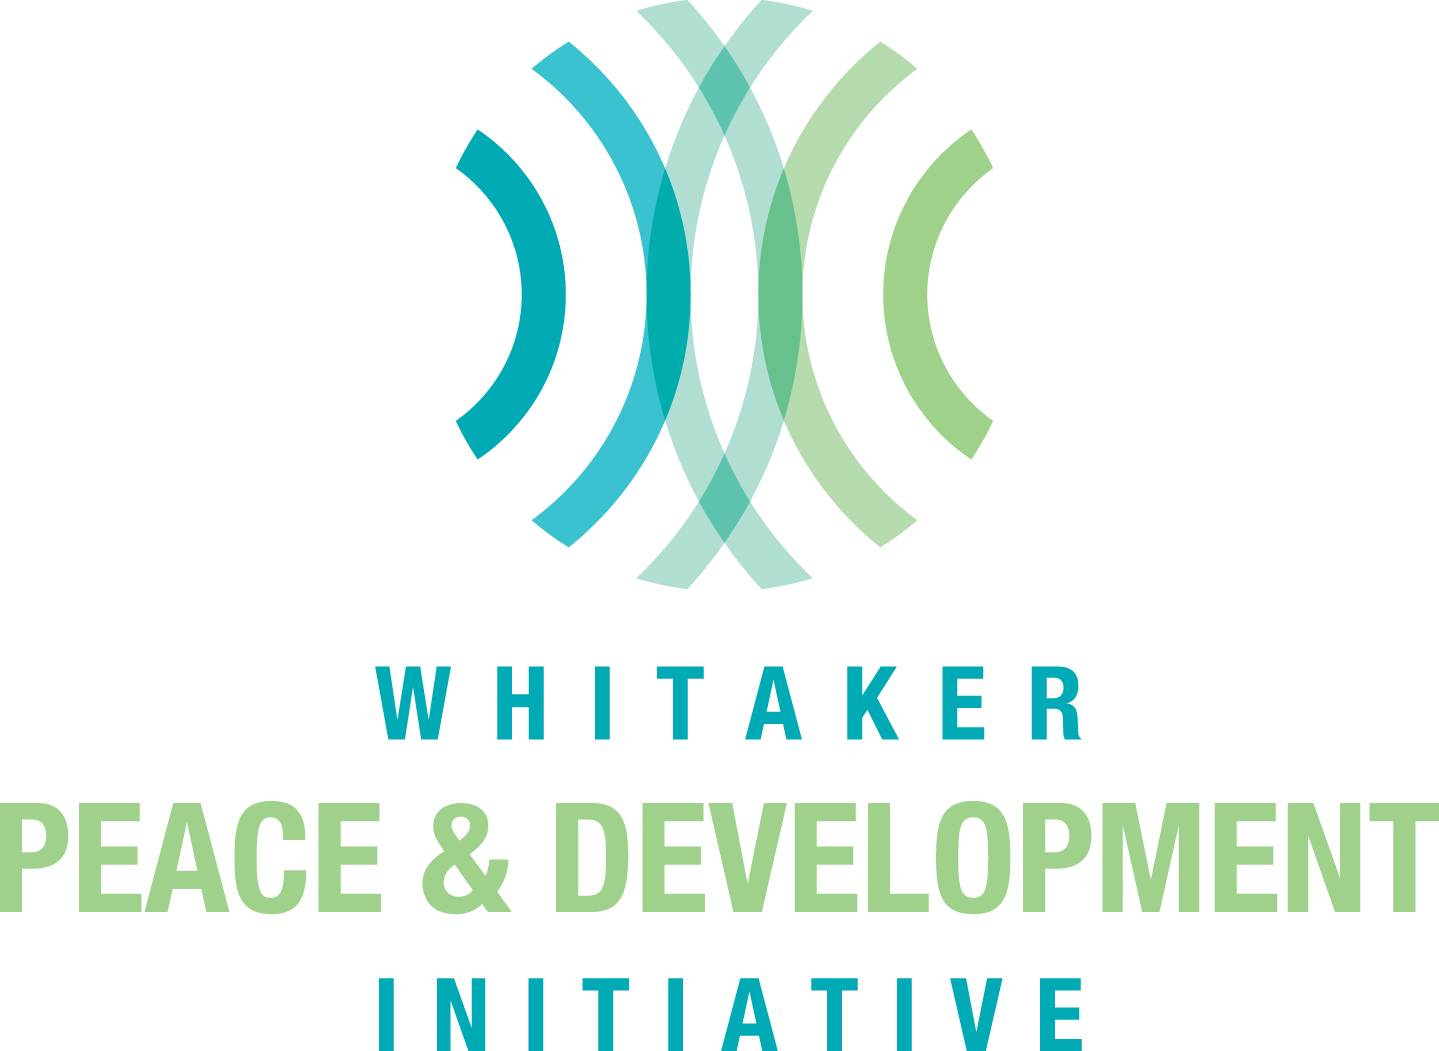 Whitaker Peace & Development Initiative